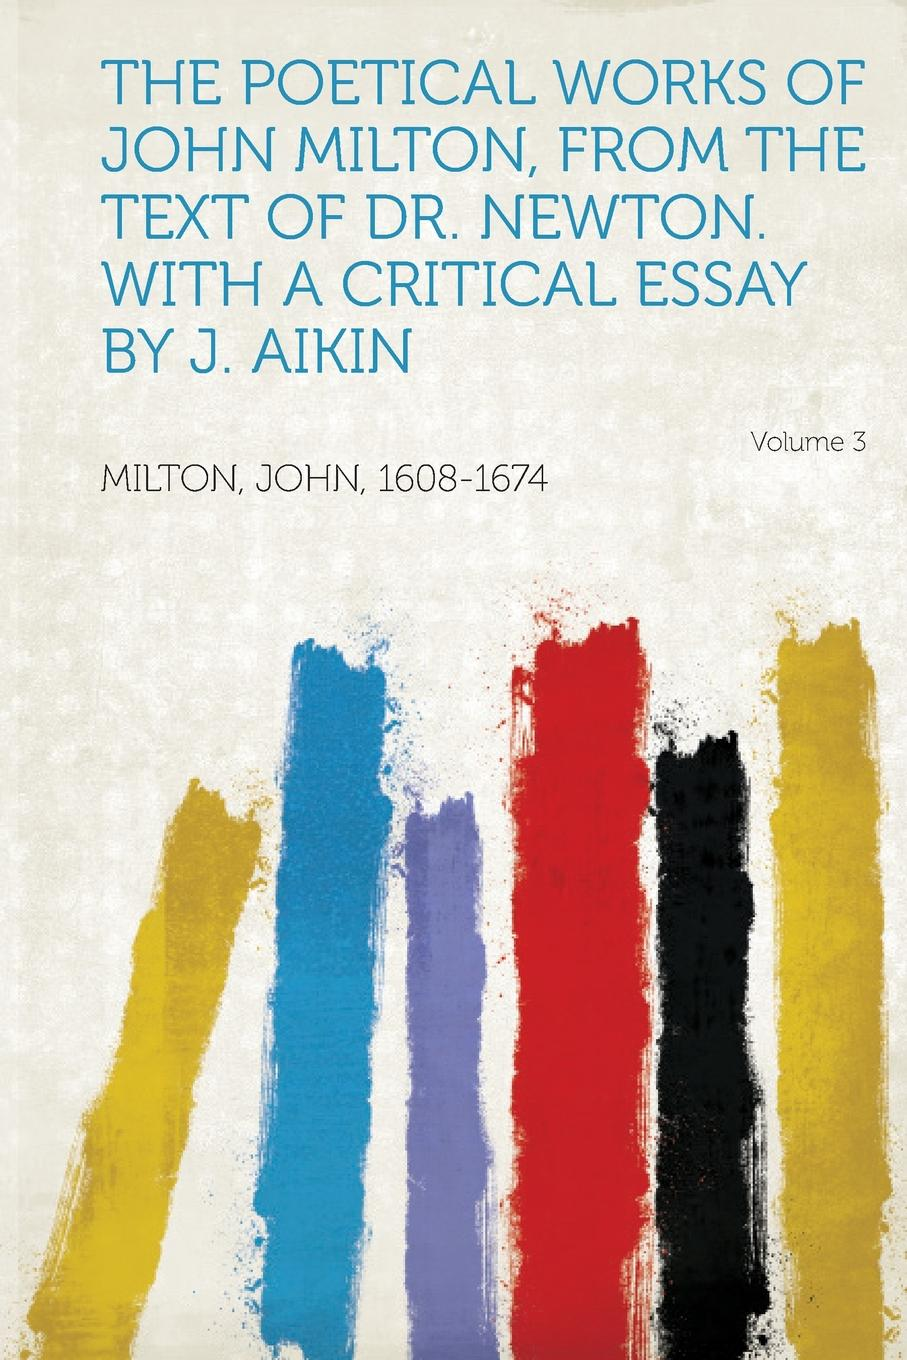 John Milton The Poetical Works of John Milton, from the Text of Dr. Newton. with a Critical Essay by J. Aikin Volume 3